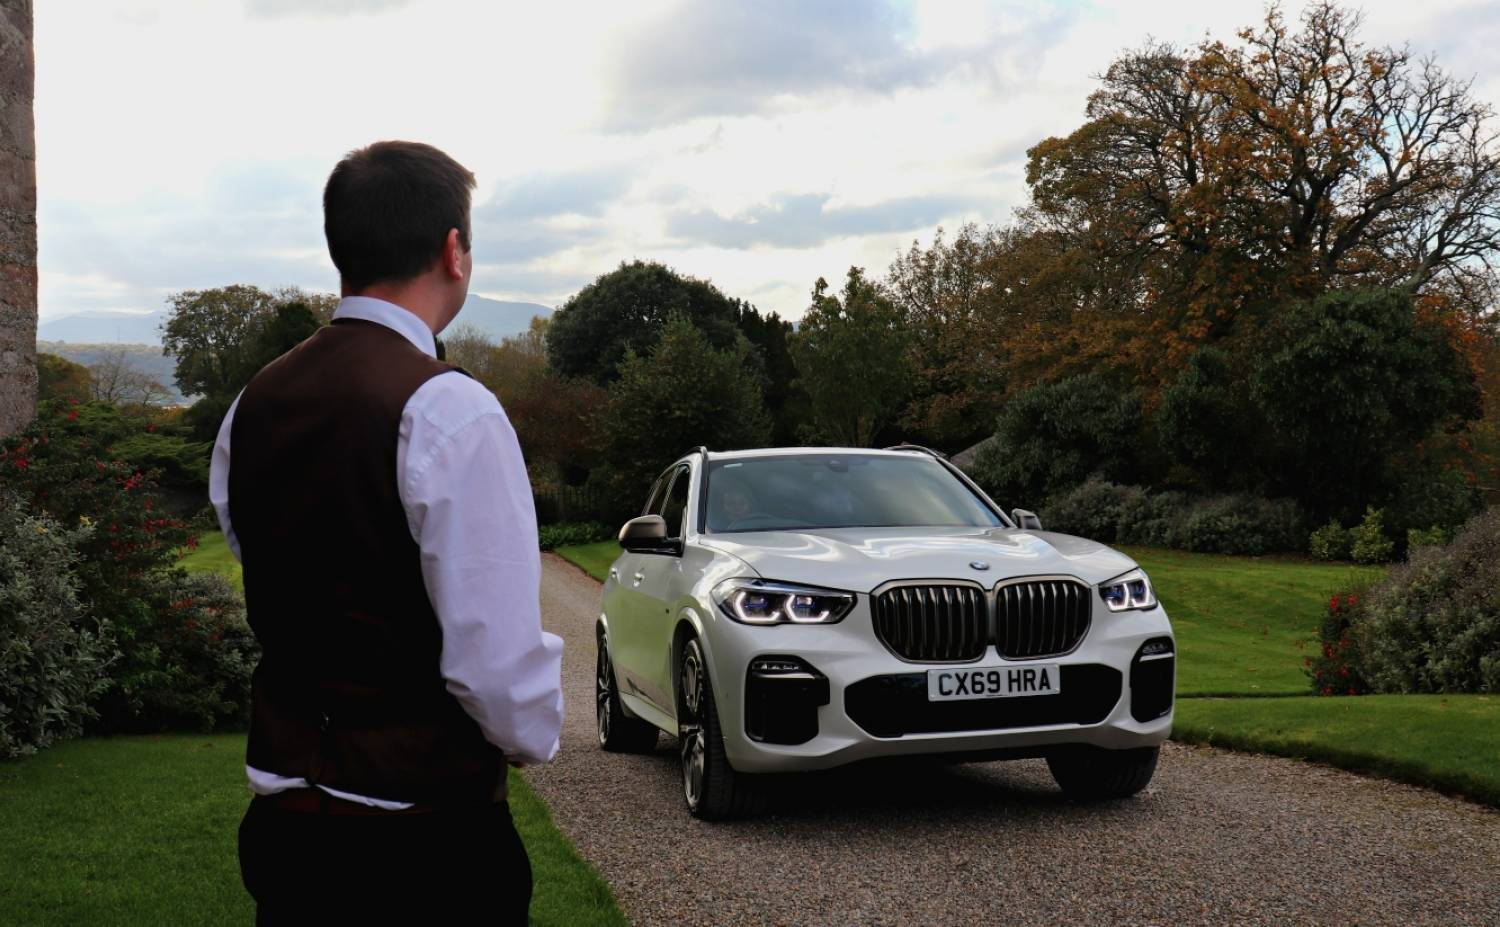 BMW X5 M50d greeted by porter